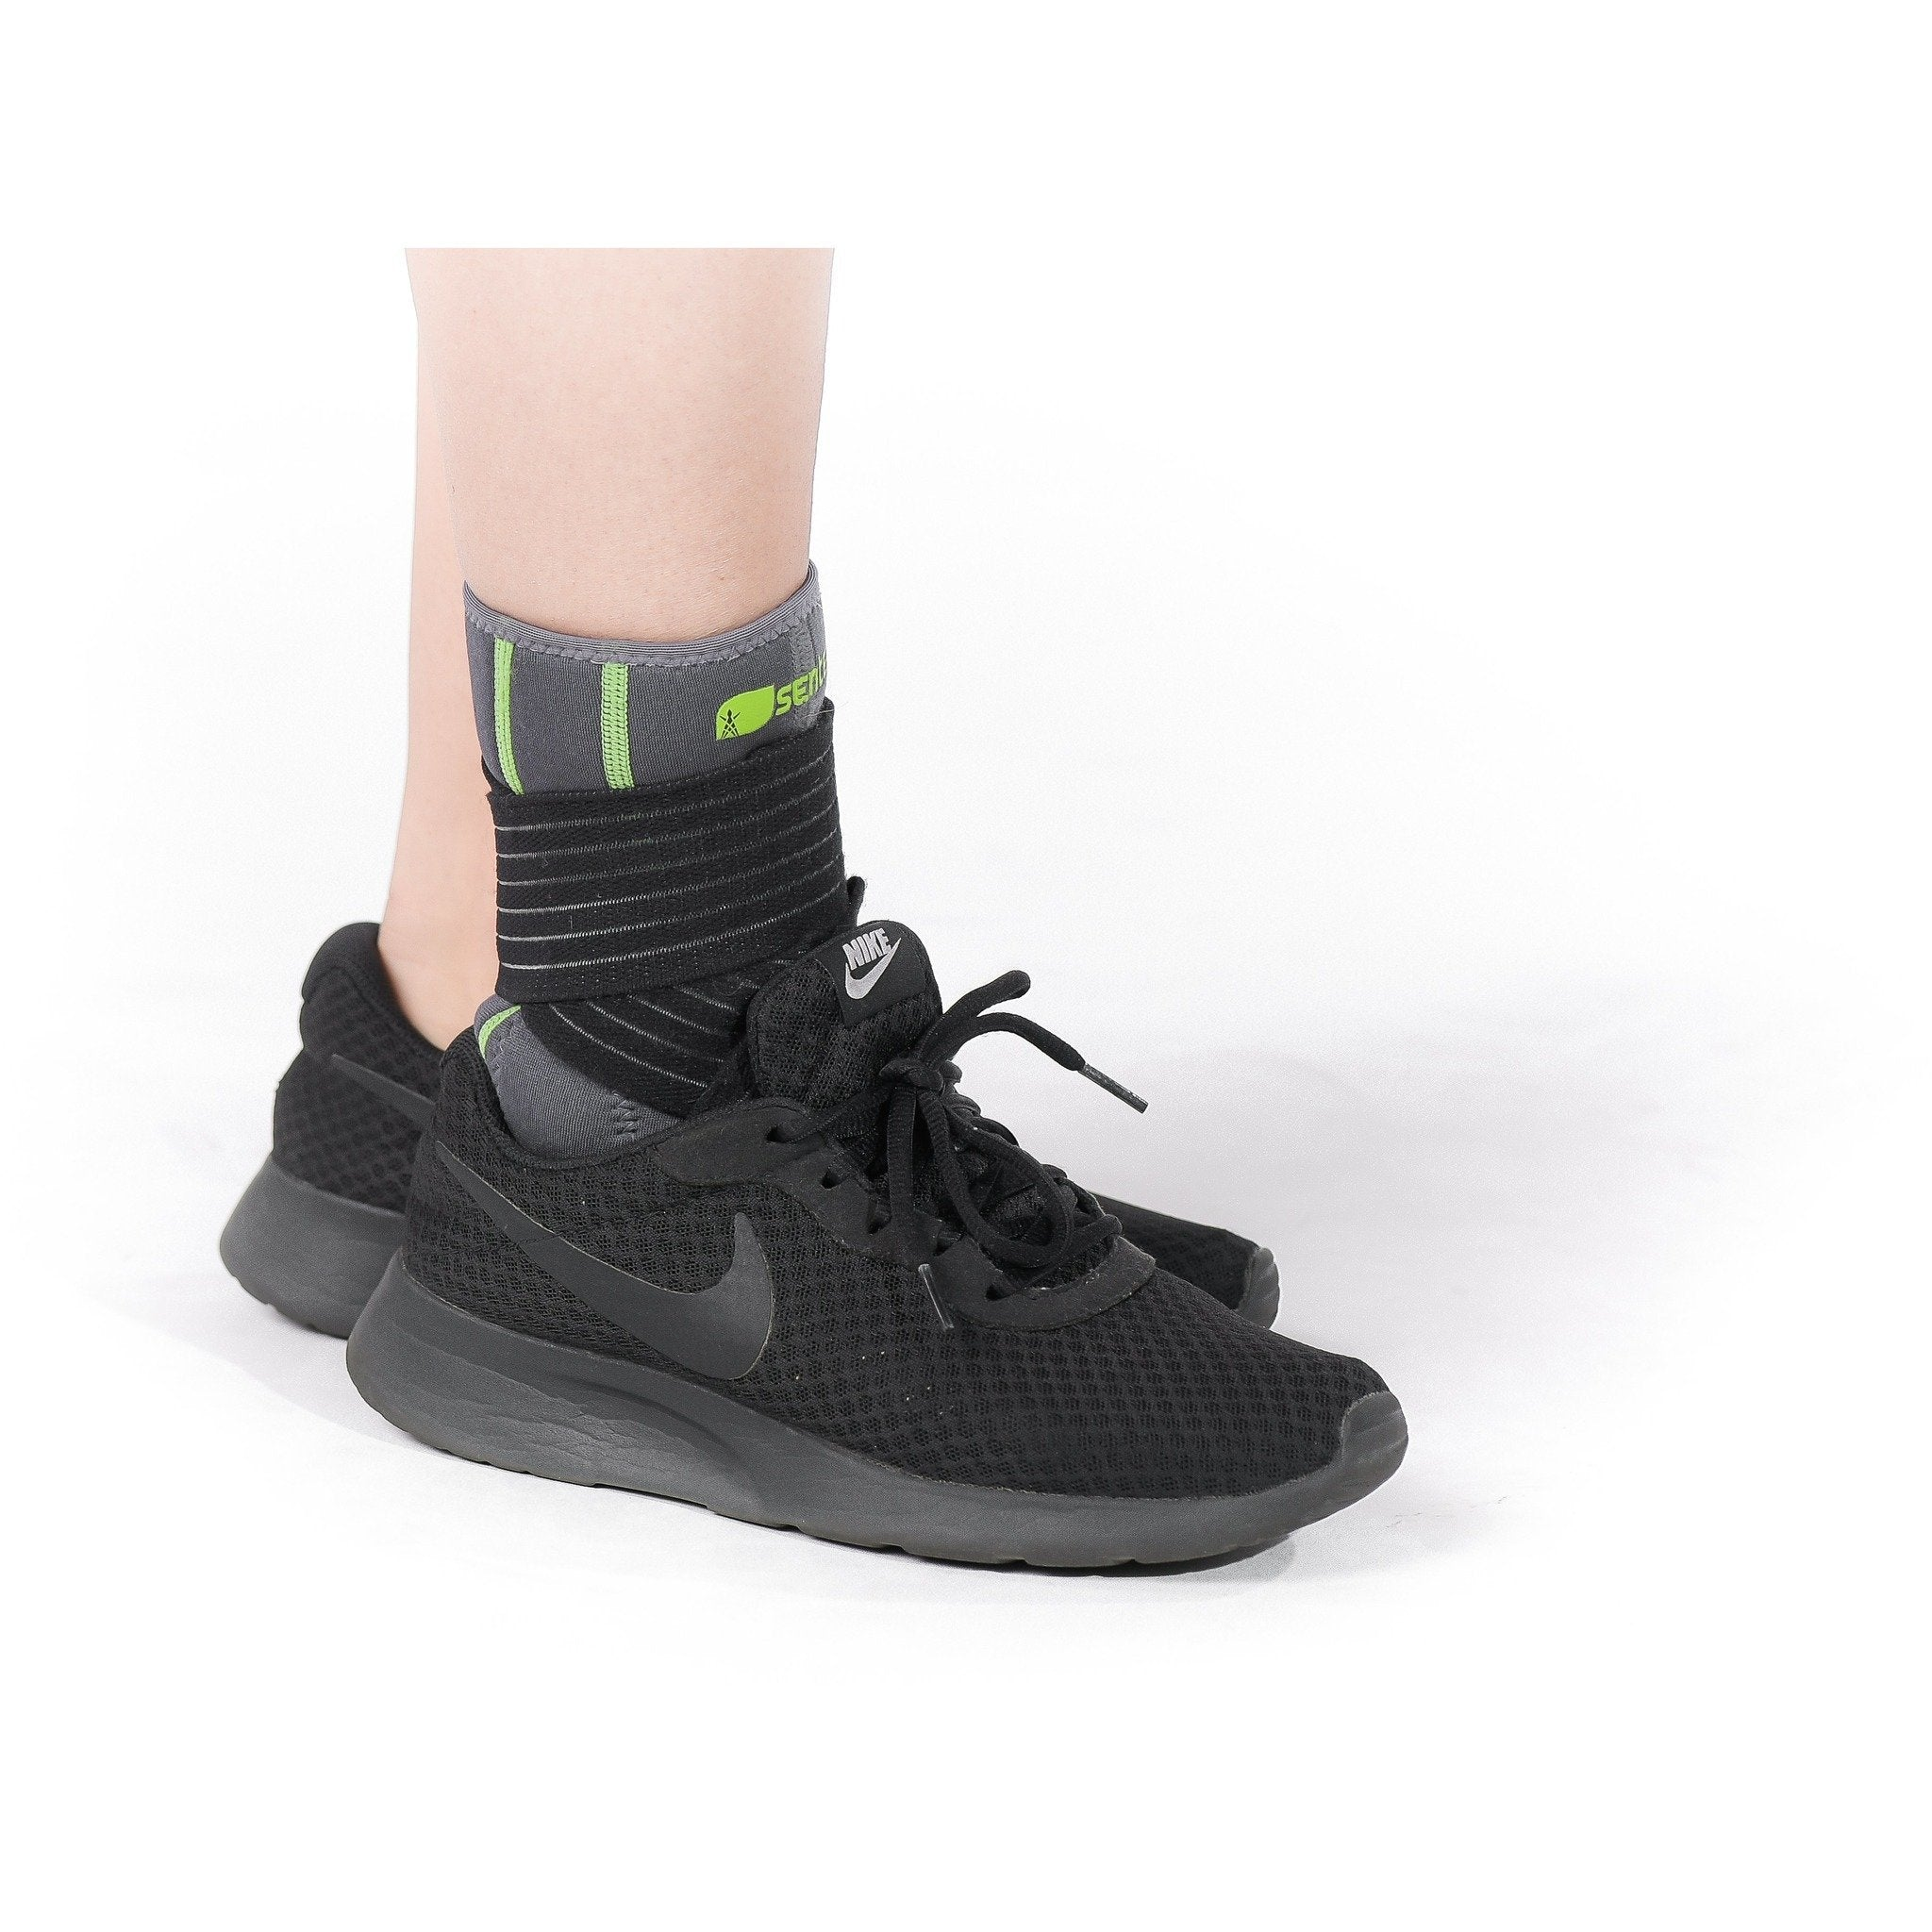 SENTEQ Ankle Stabilization Sleeve with Strap and Gel Padding Support (SQ2-N003)-ankle-SENTEQ